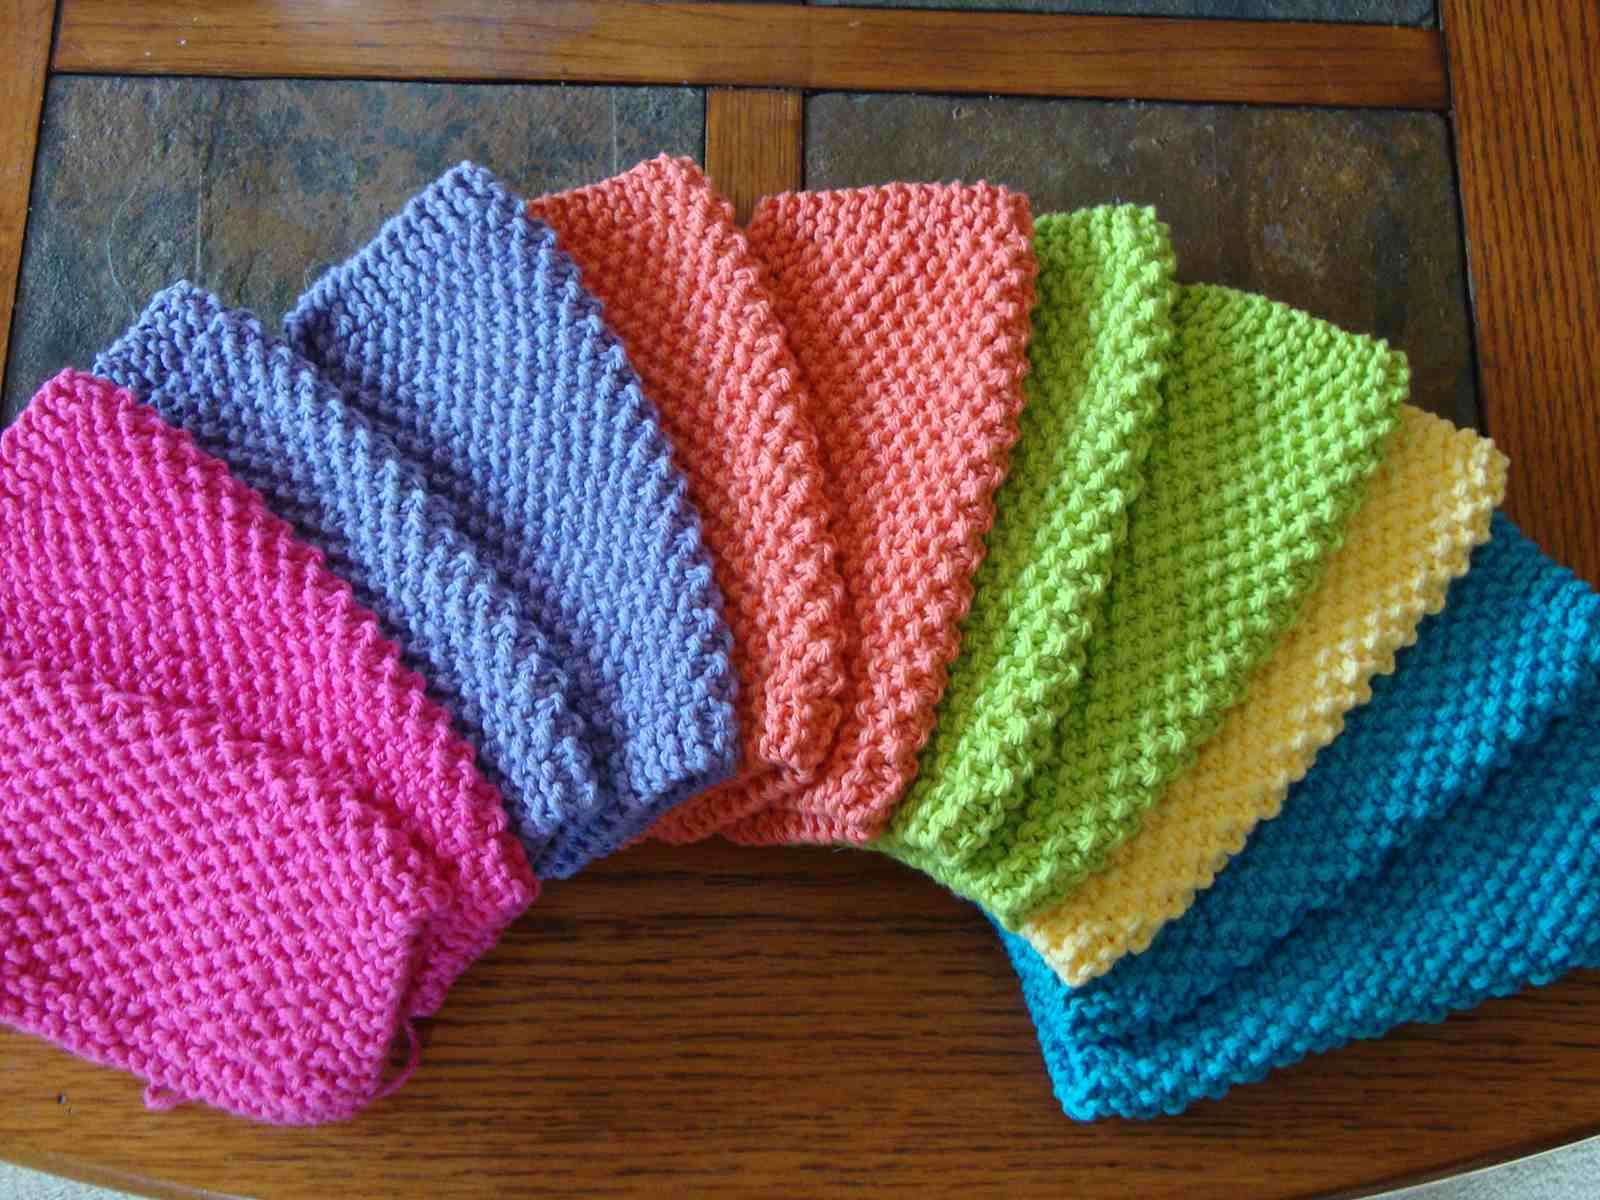 Free Knitted Cotton Dishcloth Patterns 10 Knit Dishcloth Patterns For Beginners